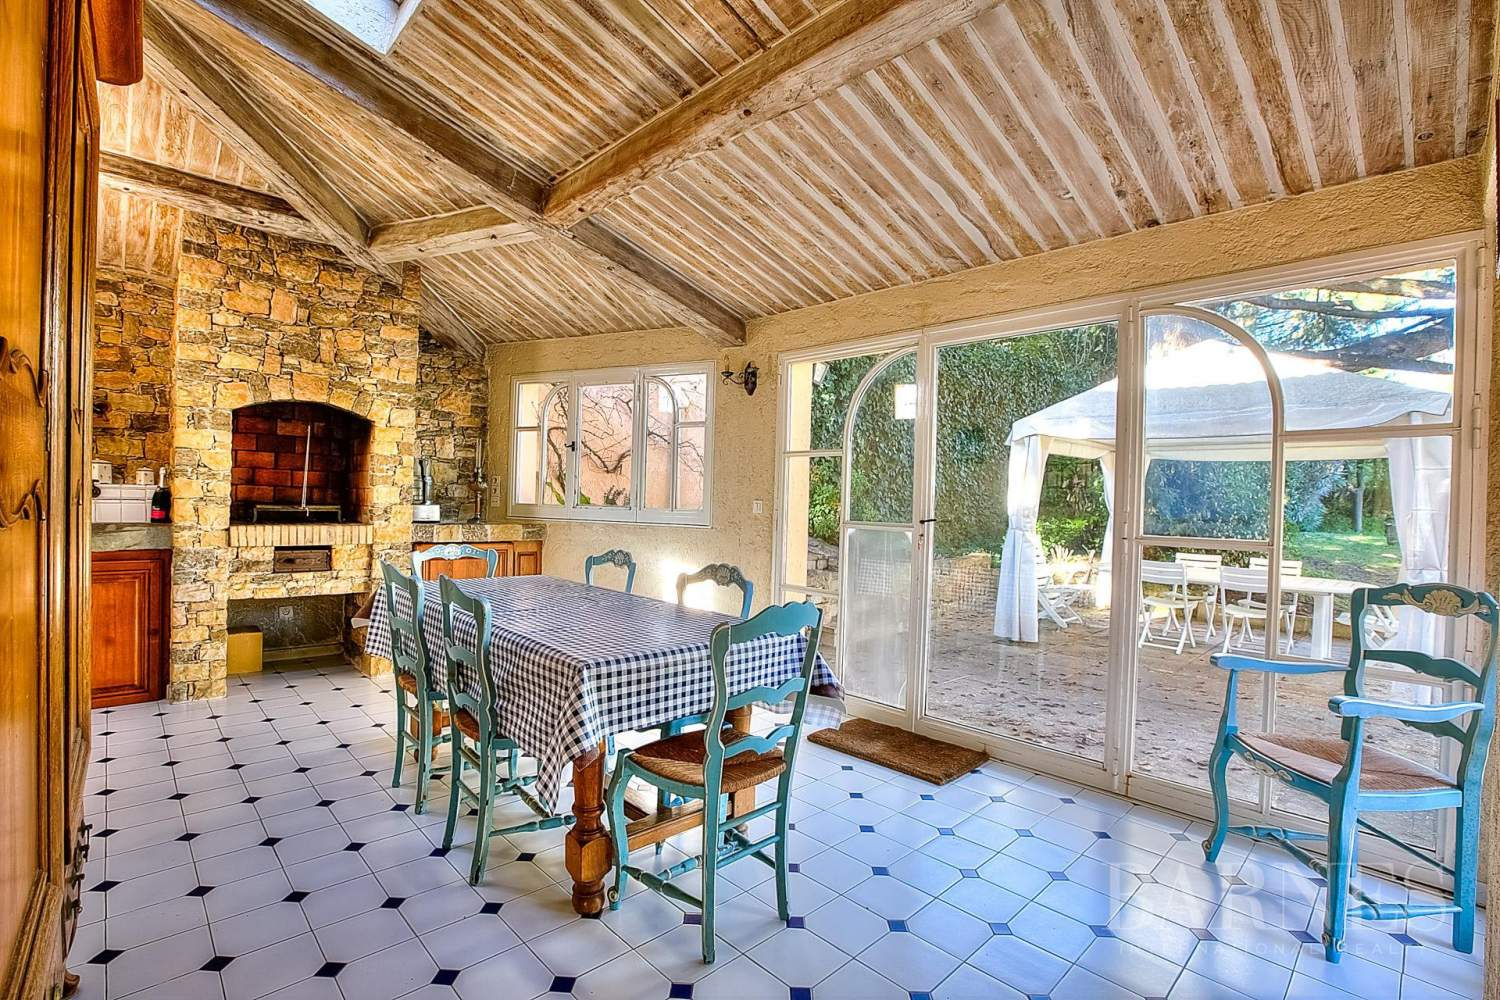 CANNES CROIX DES GARDES - PROPERTY COMPOSED OF 2 VILLAS - 5 BEDROOMS - SEA VIEW picture 10